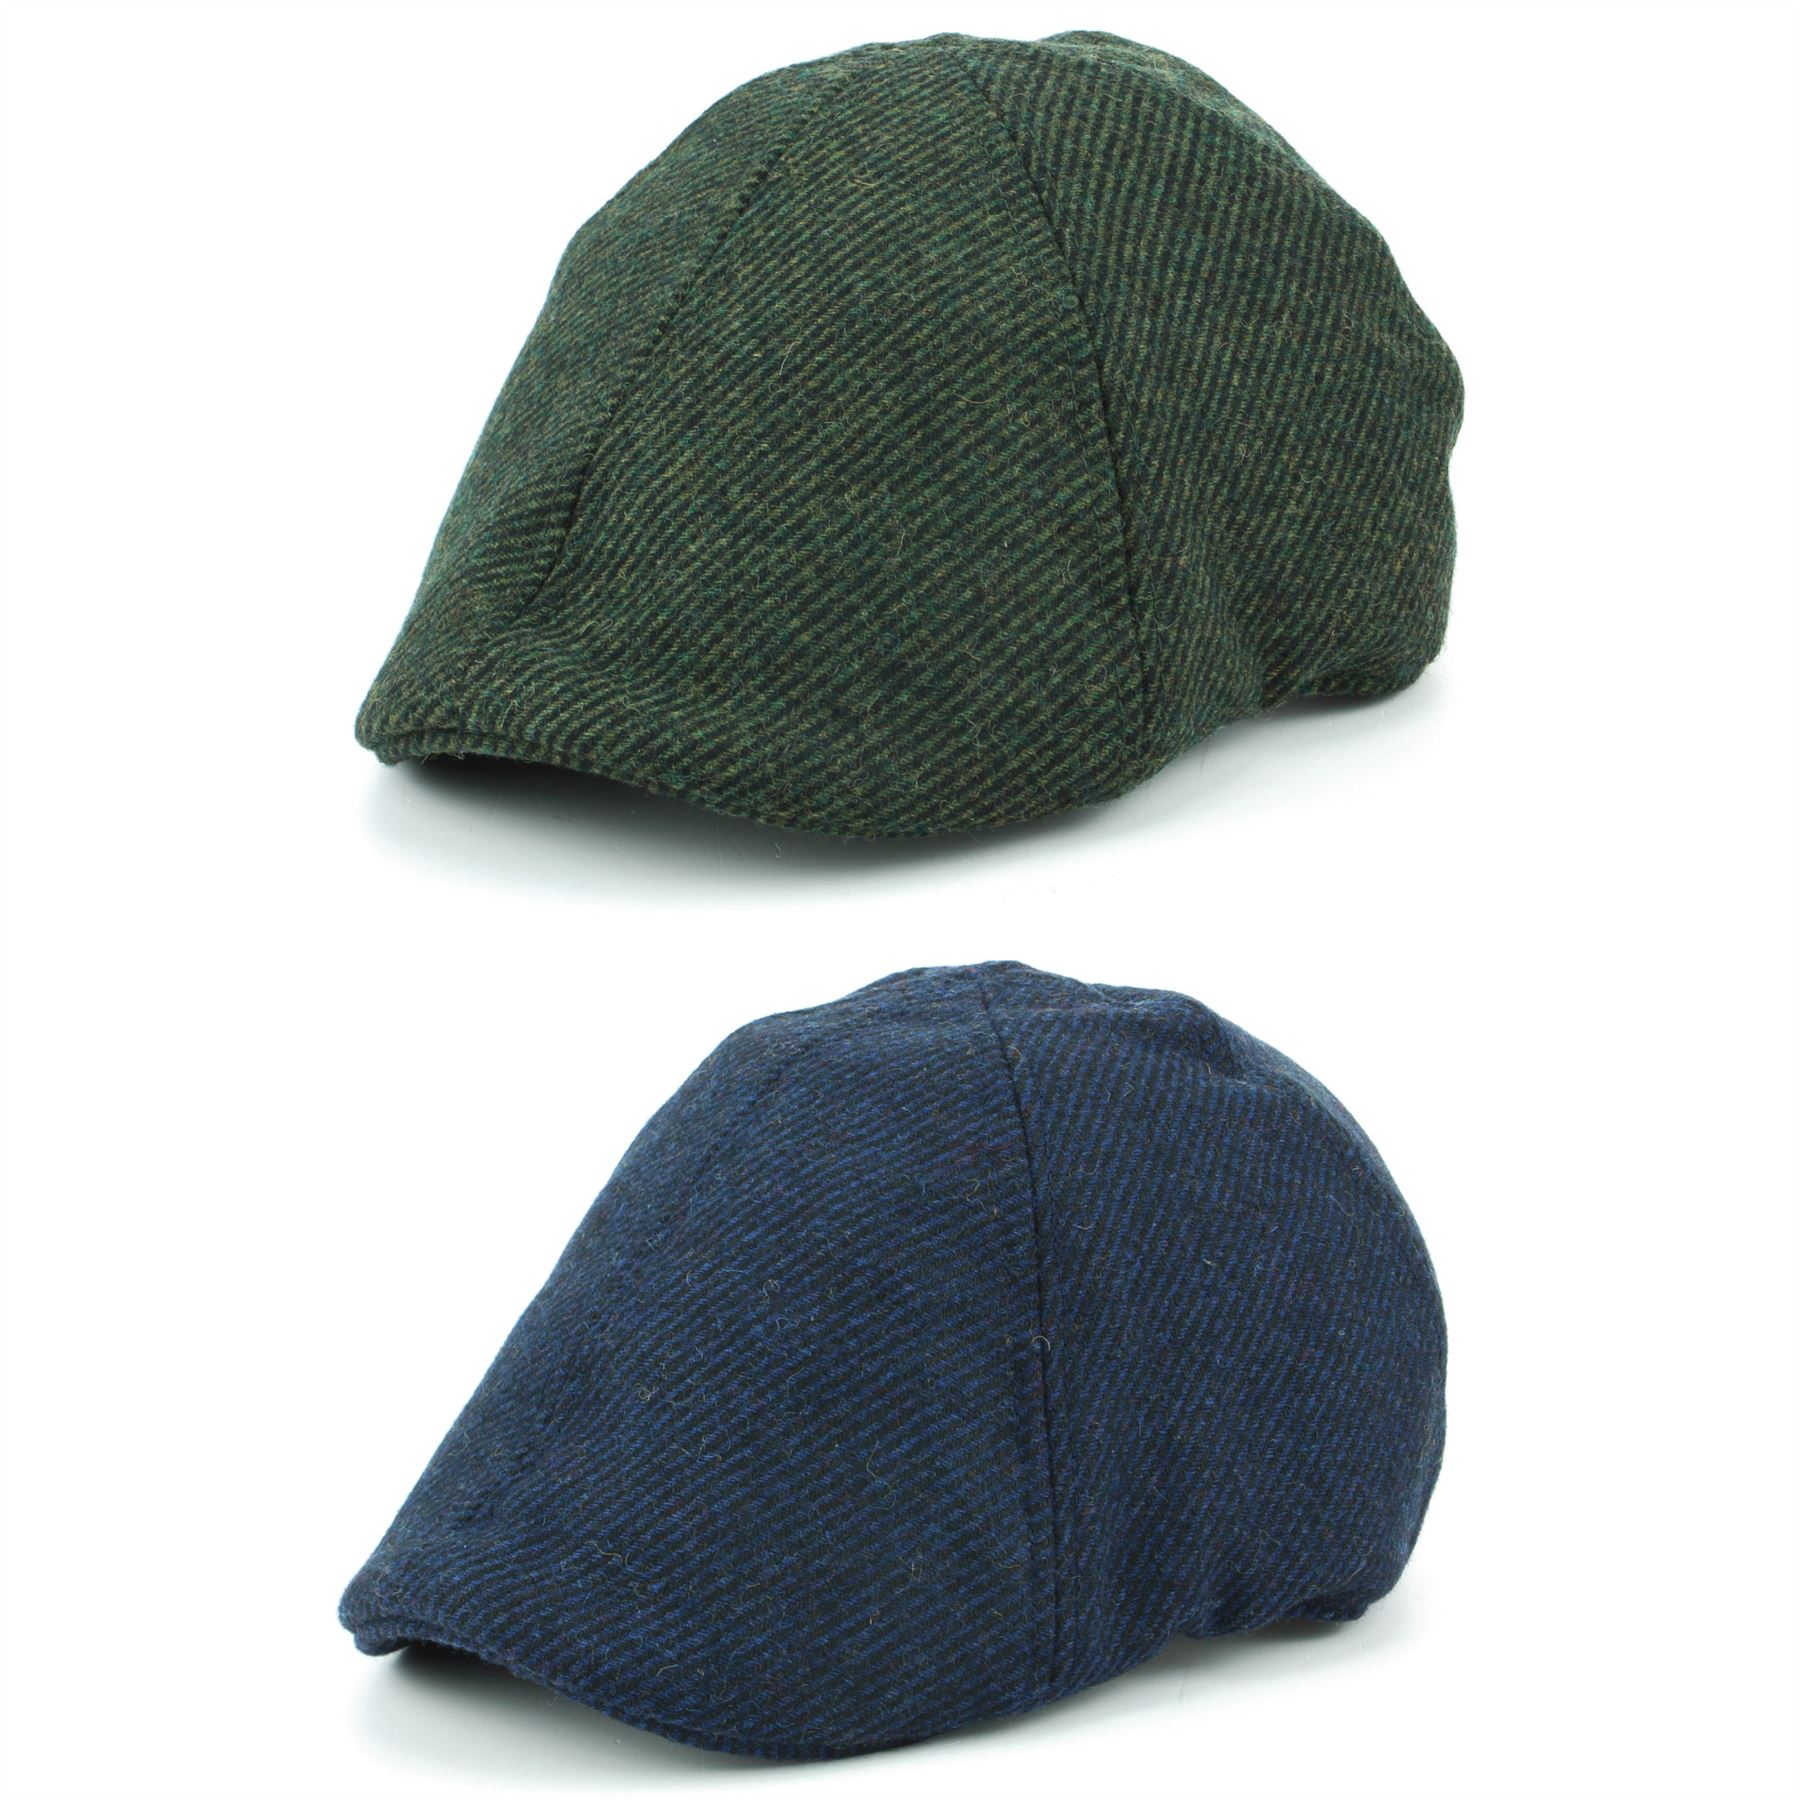 f0d95e500c4 Details about Duckbill Flat Cap Hat Wool Hawkins BLUE GREEN Driving Tweed  Quilted Men Ladies